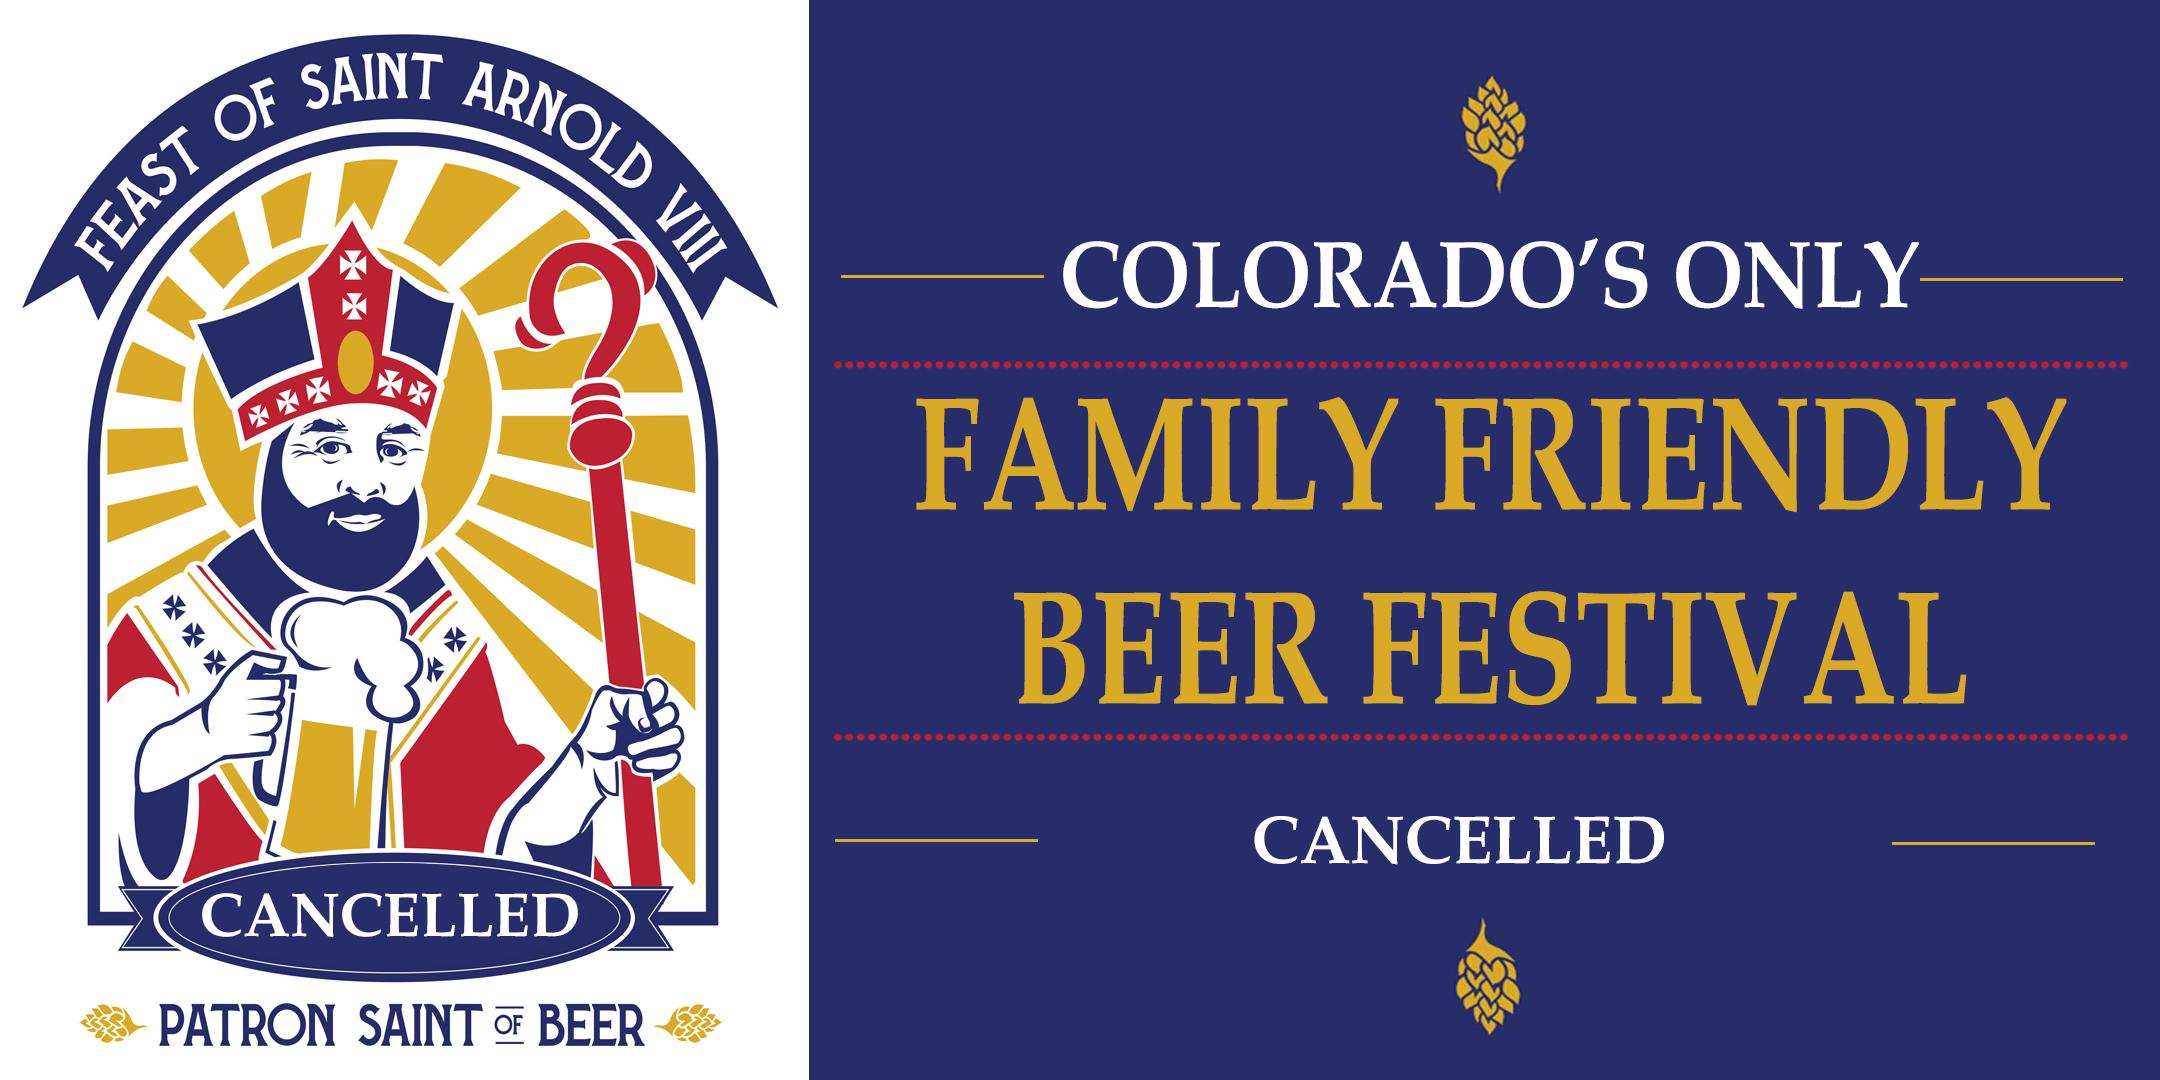 Feast of St Arnold VIII Family Friendly Beer Festival - CANCELLED